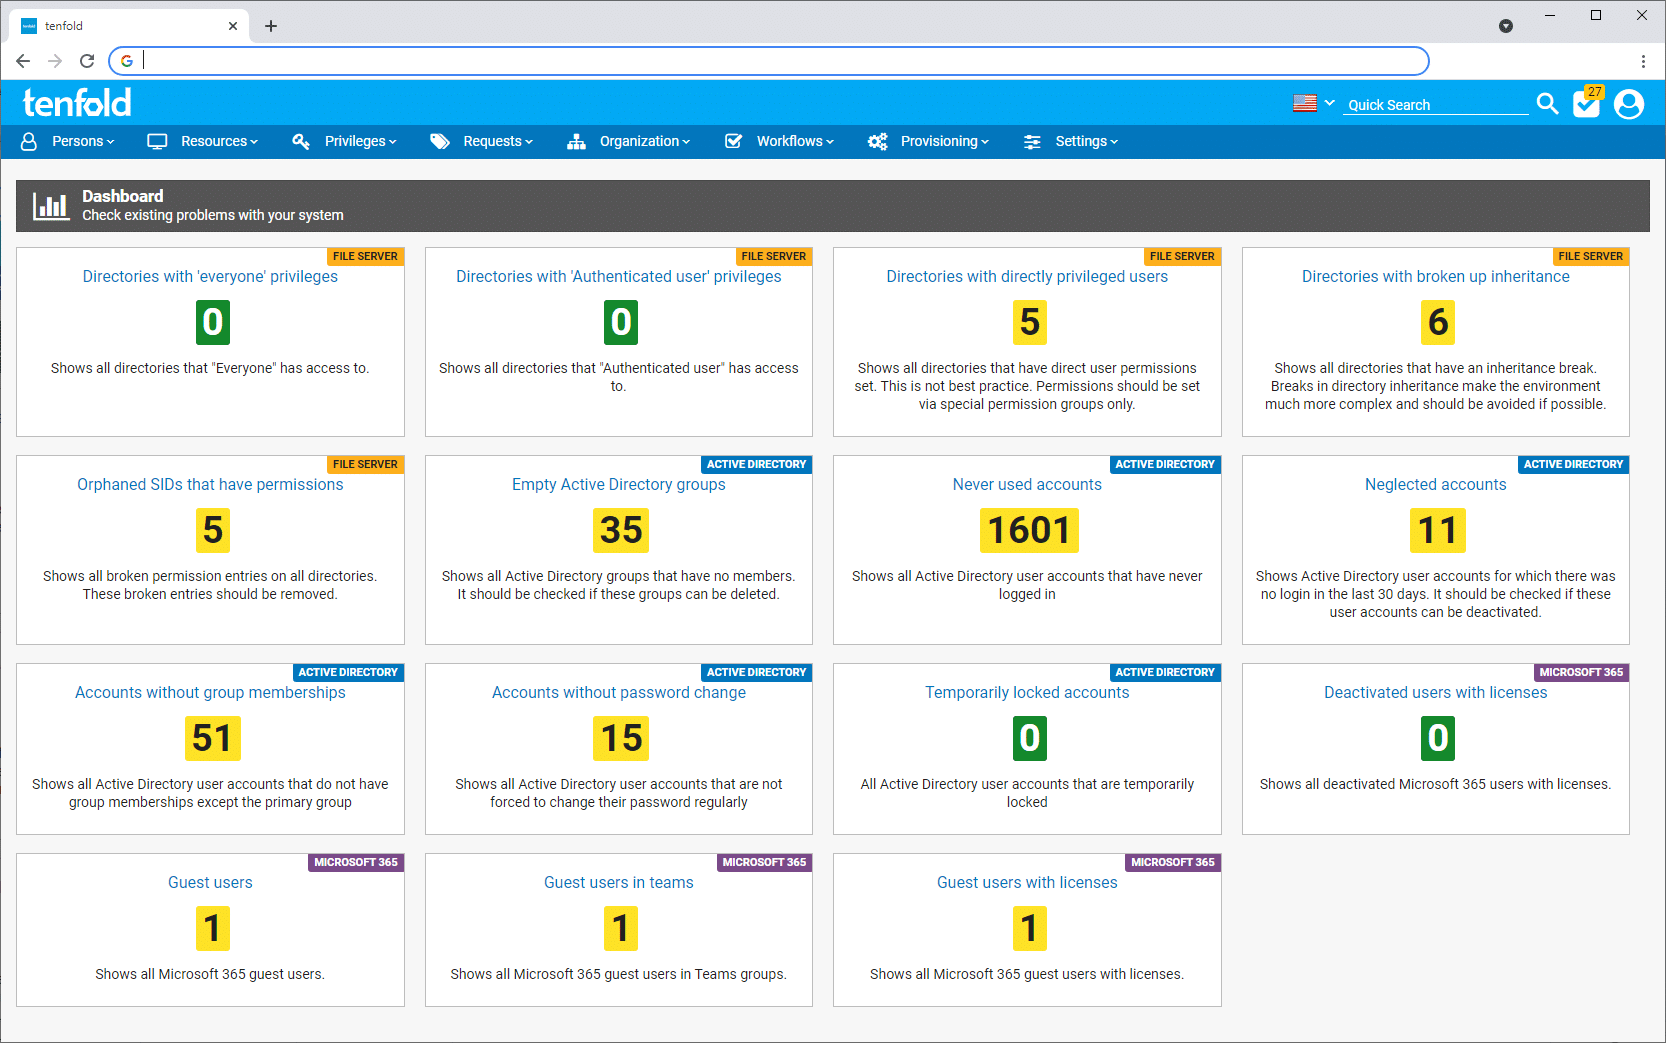 Screenshot showing the dashboard interface of the IAM solution tenfold, breaking down active directory and file server problems into various categories.